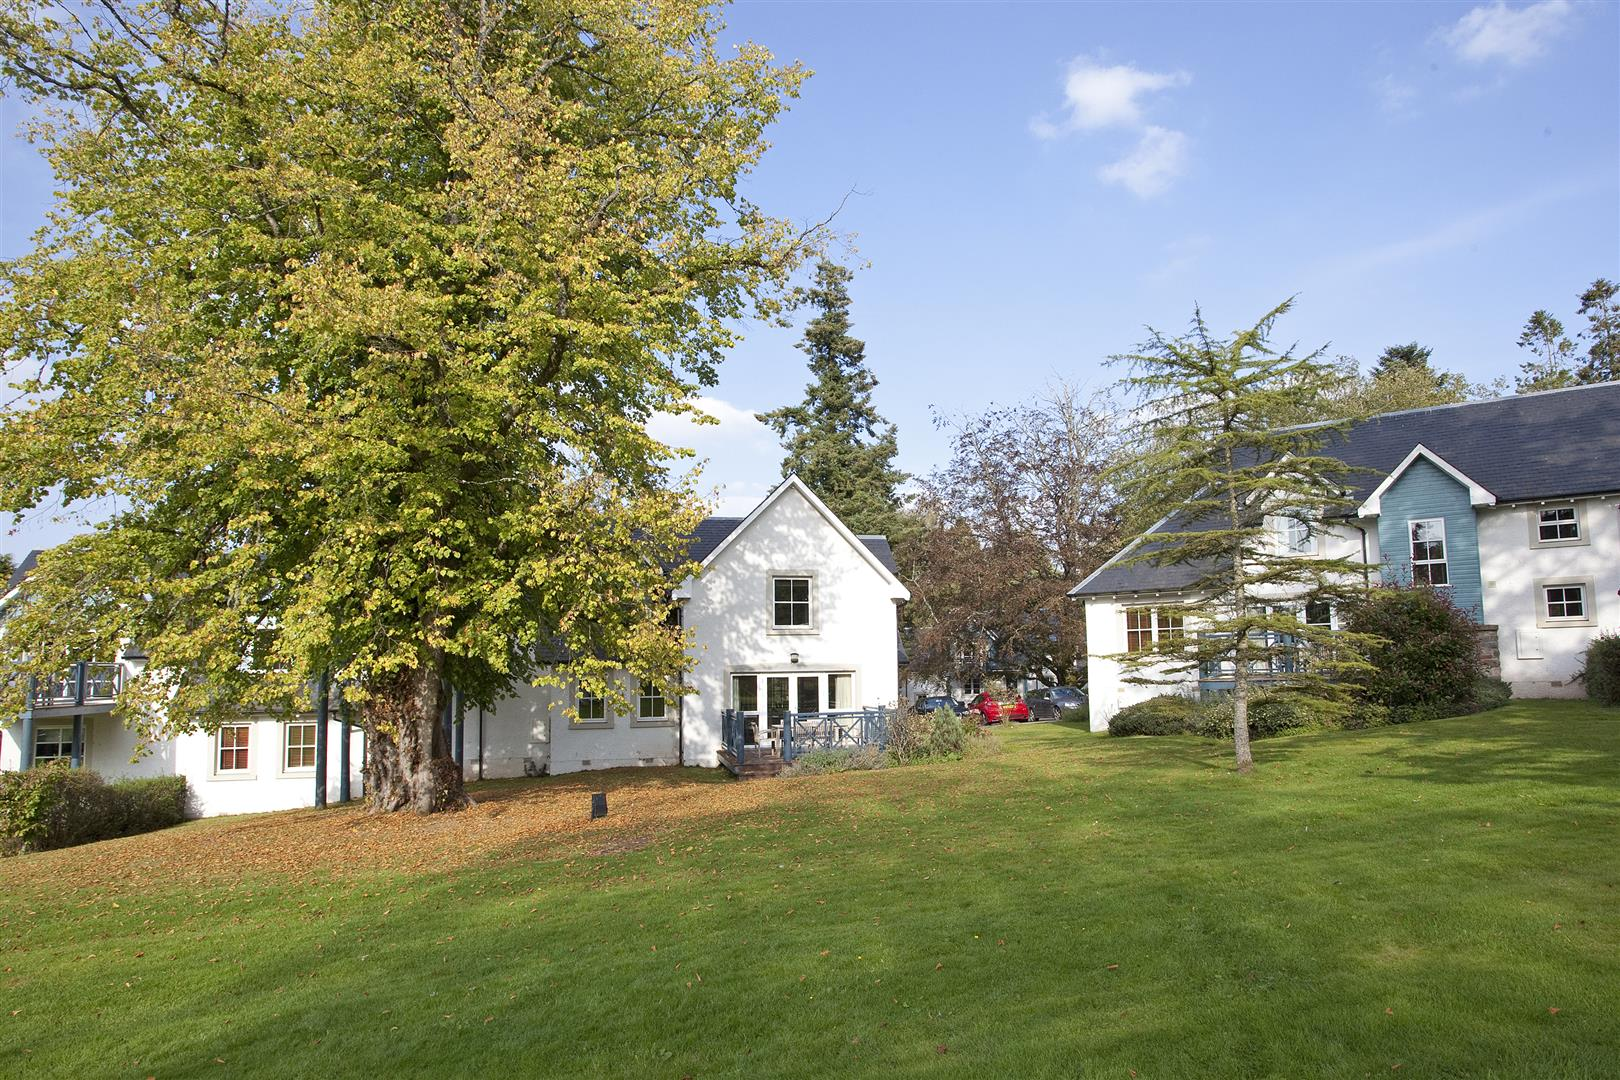 705, Garden Lodges, Duchally Country Estate, Auchterarder, Perthshire, PH3 1PN, UK